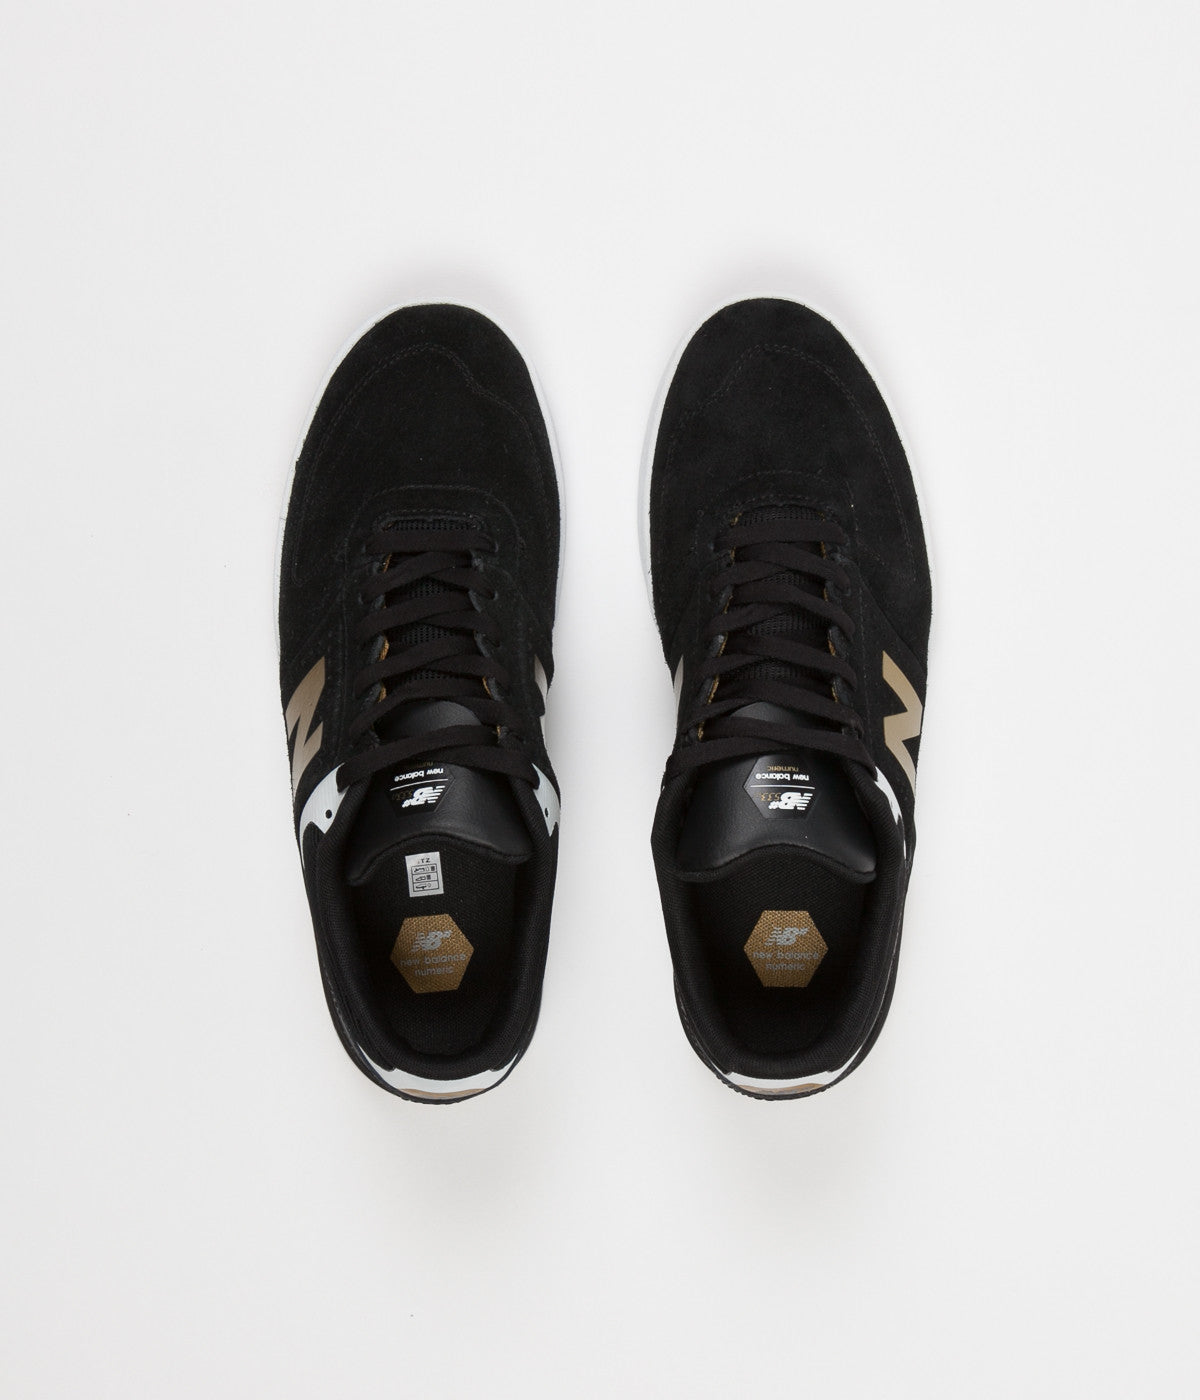 New Balance Numeric 533 Shoes - Black / Gold